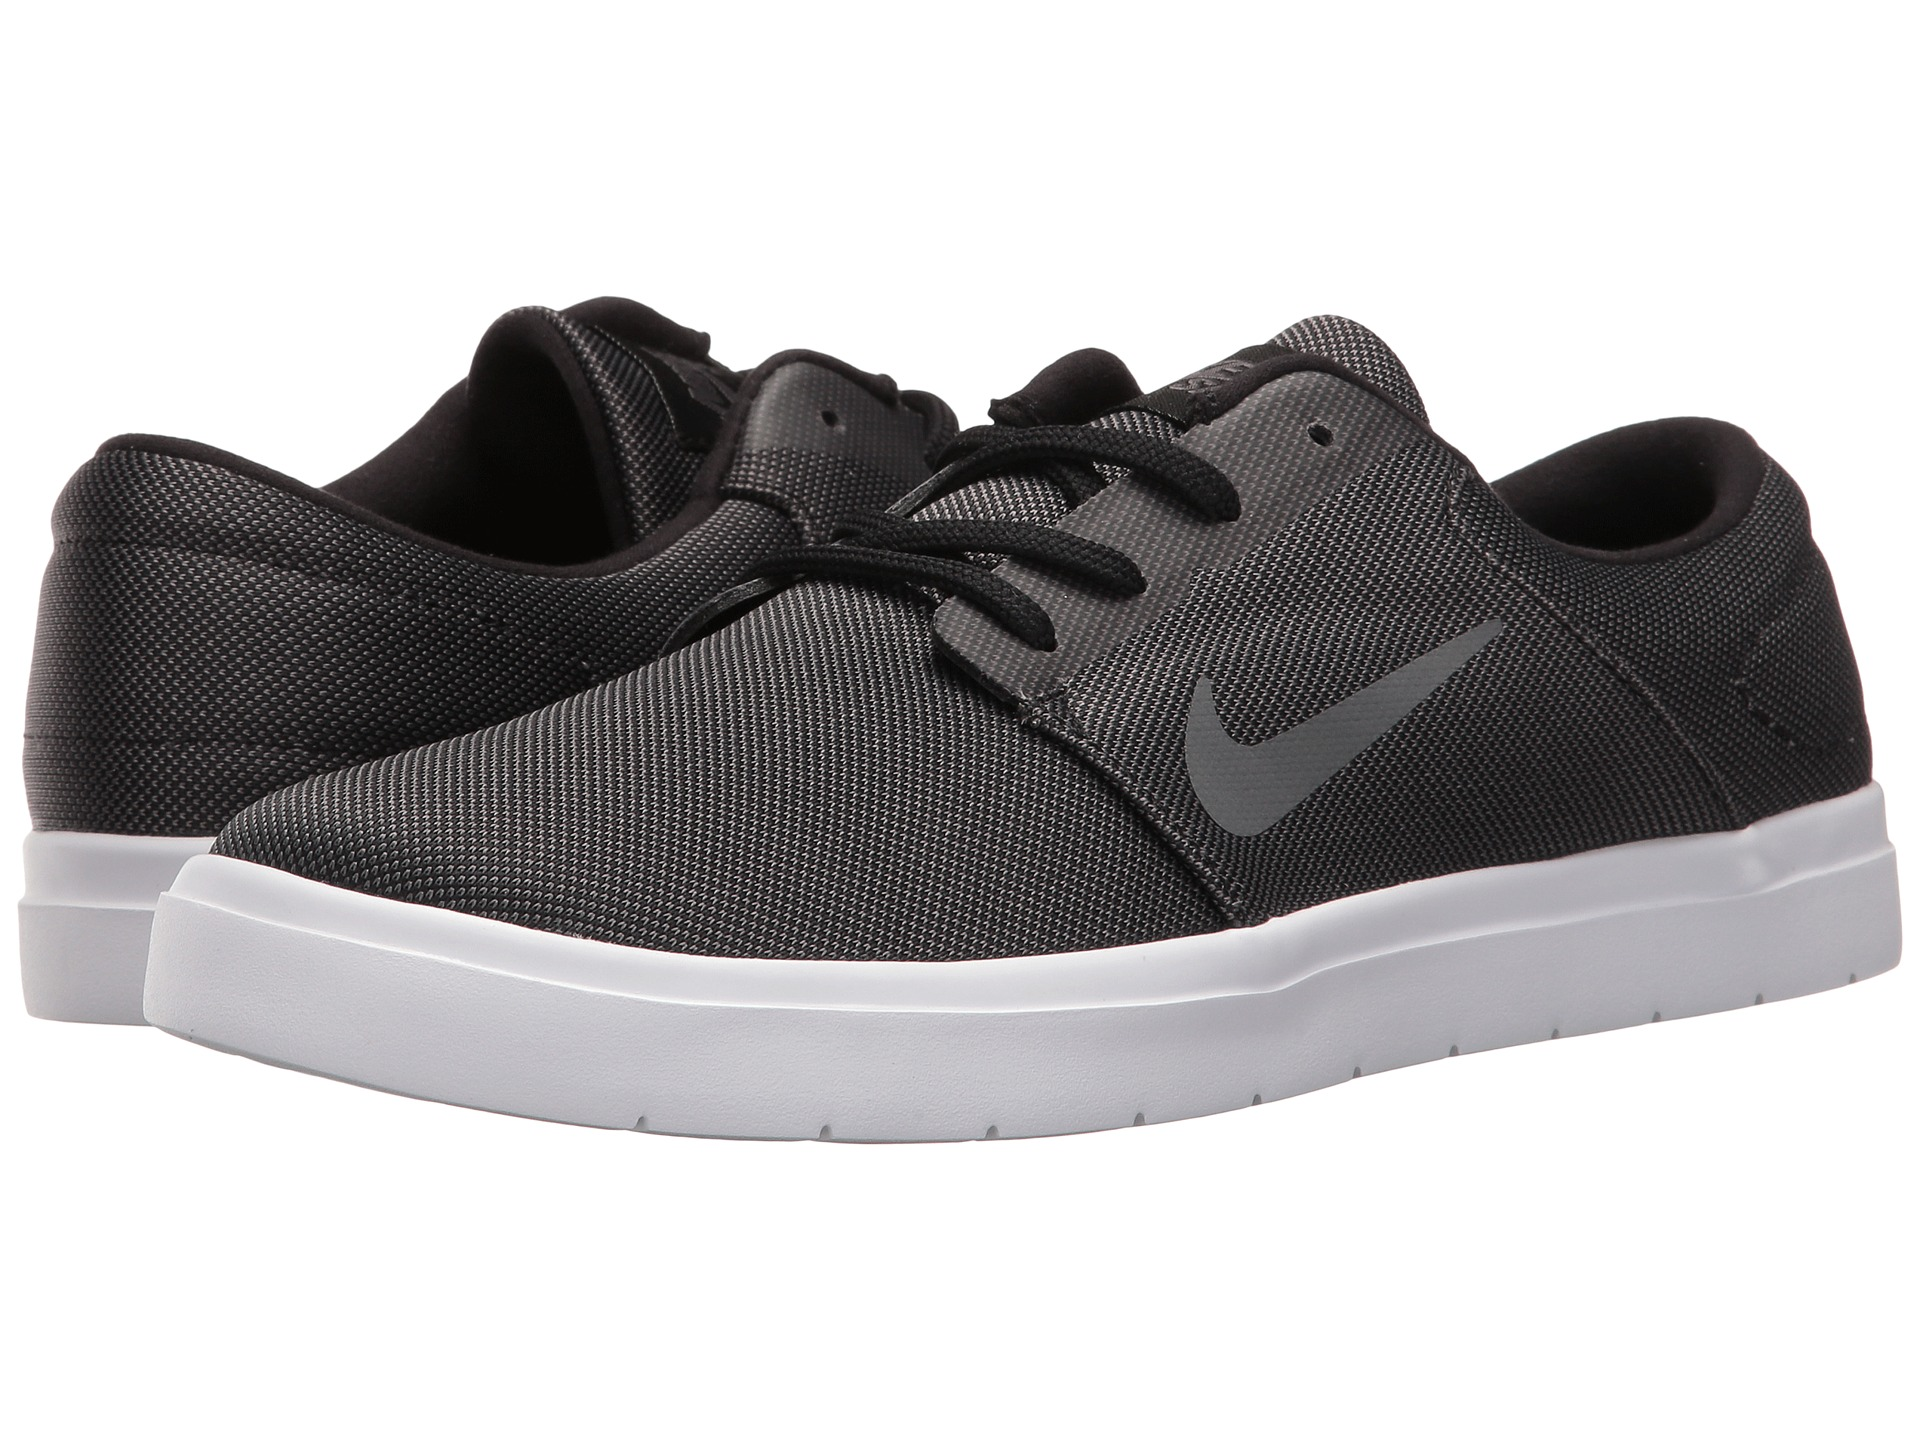 View More Like This Nike SB Portmore Ultralight Canvas